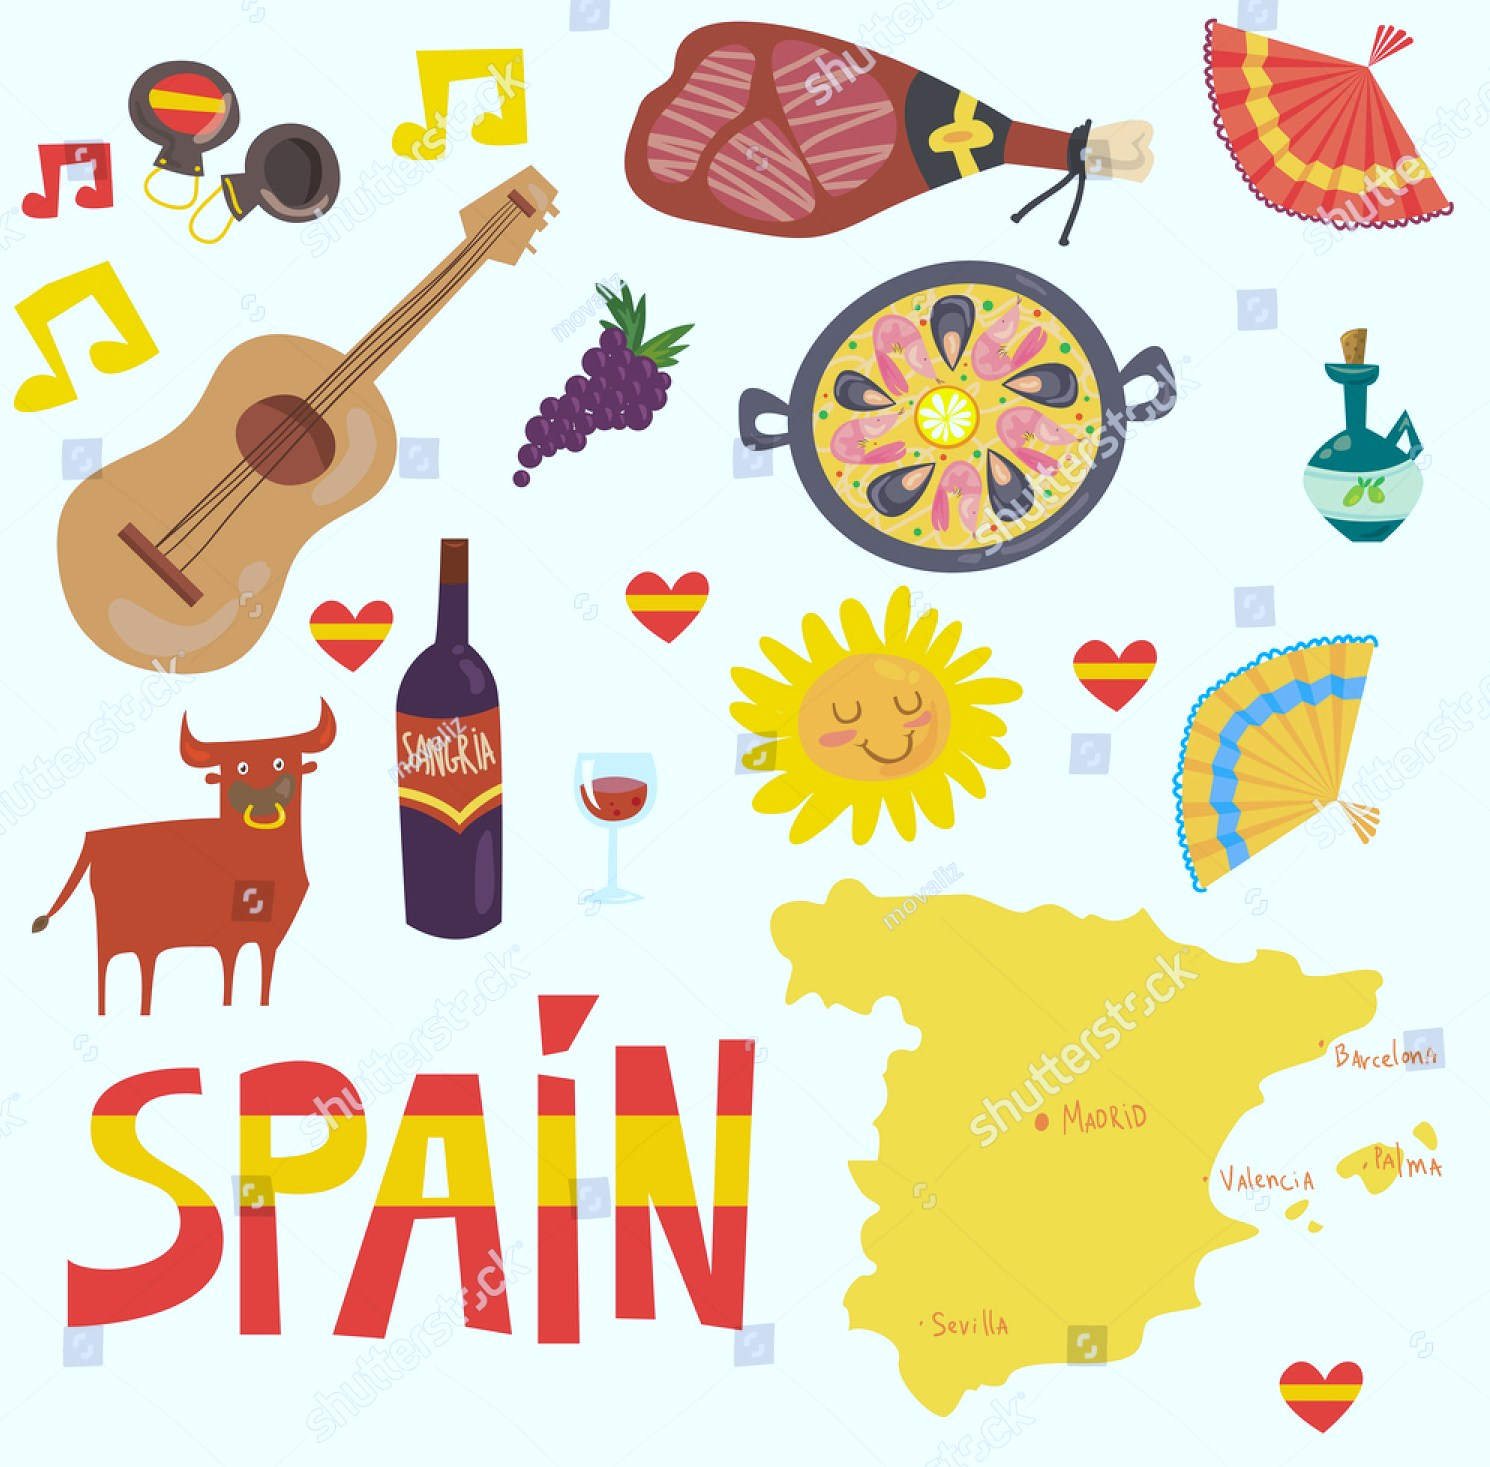 how to say spain in spanish